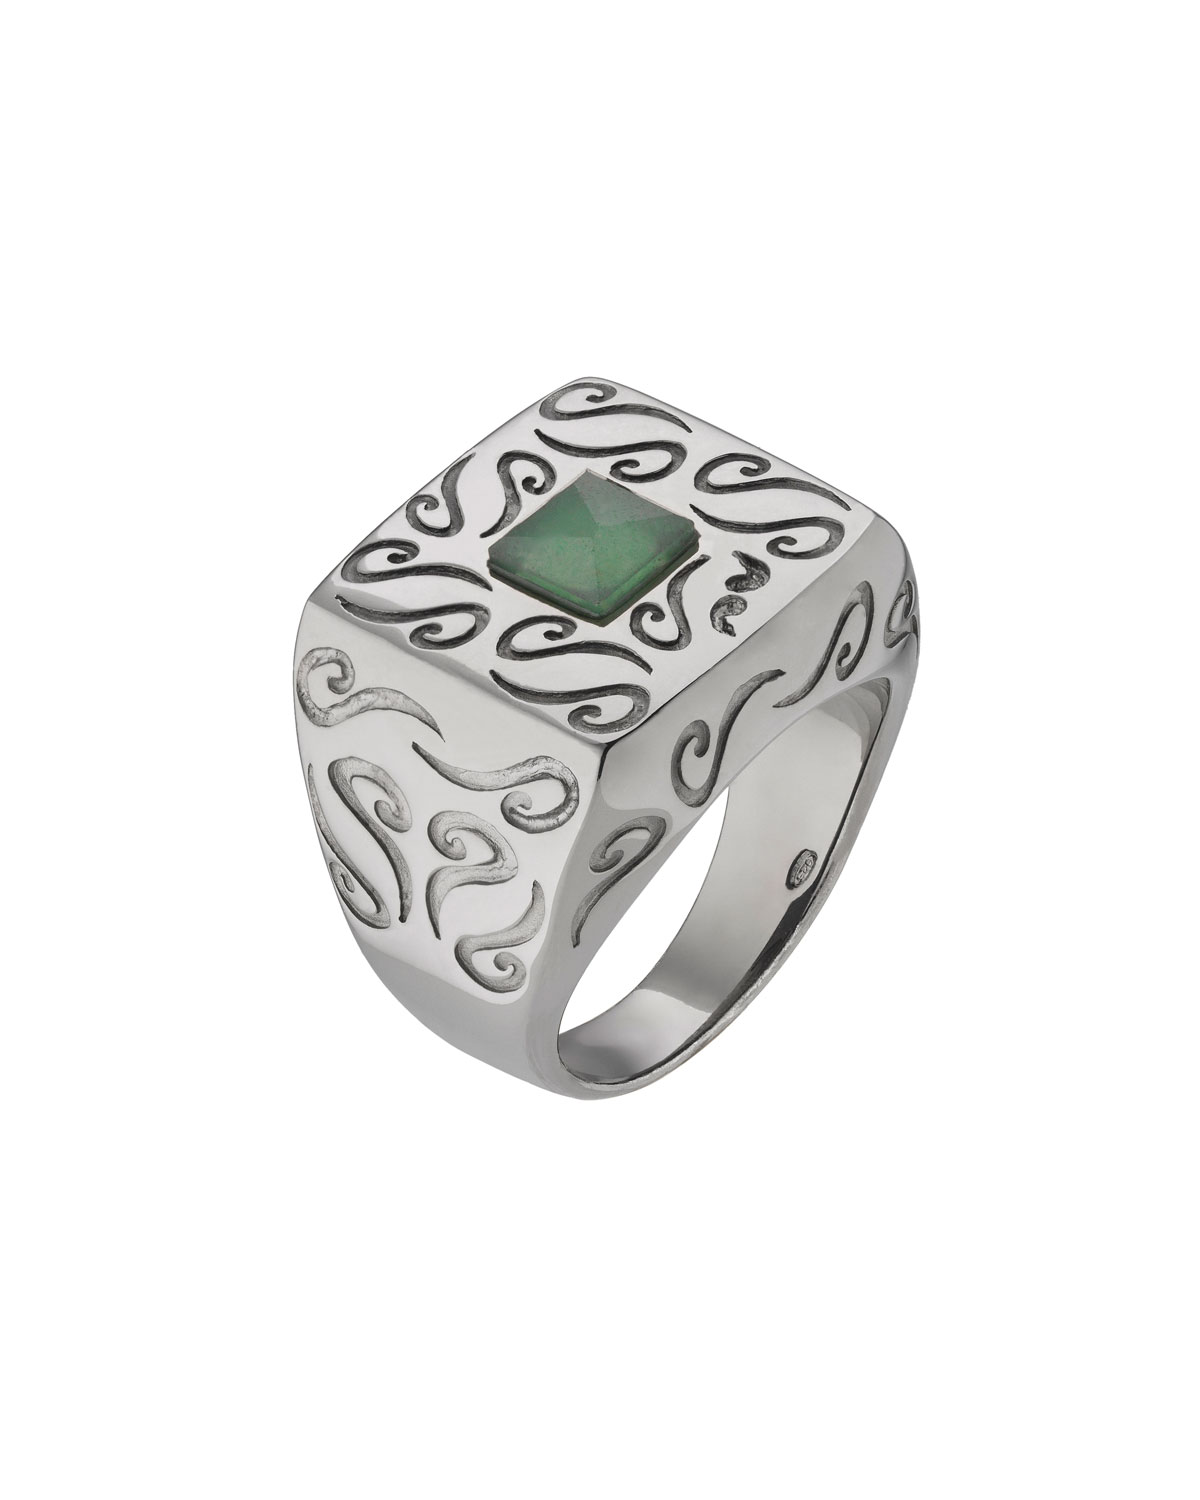 MARCO TA MOKO Men'S Oxidized Silver Ring With Aventurine, Size 10